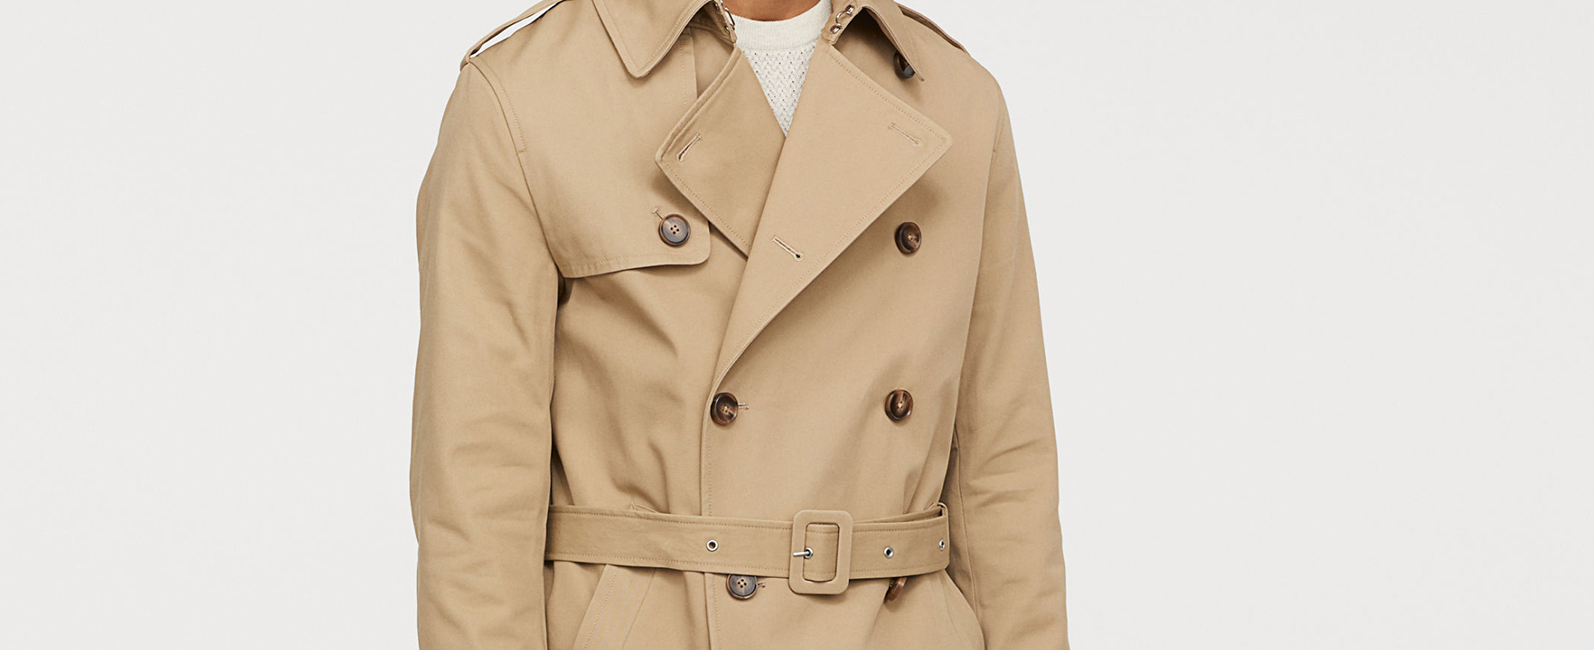 timeless design 5271f 1d5fc The Best Affordable Men's Trench Coats - Under £150 ...